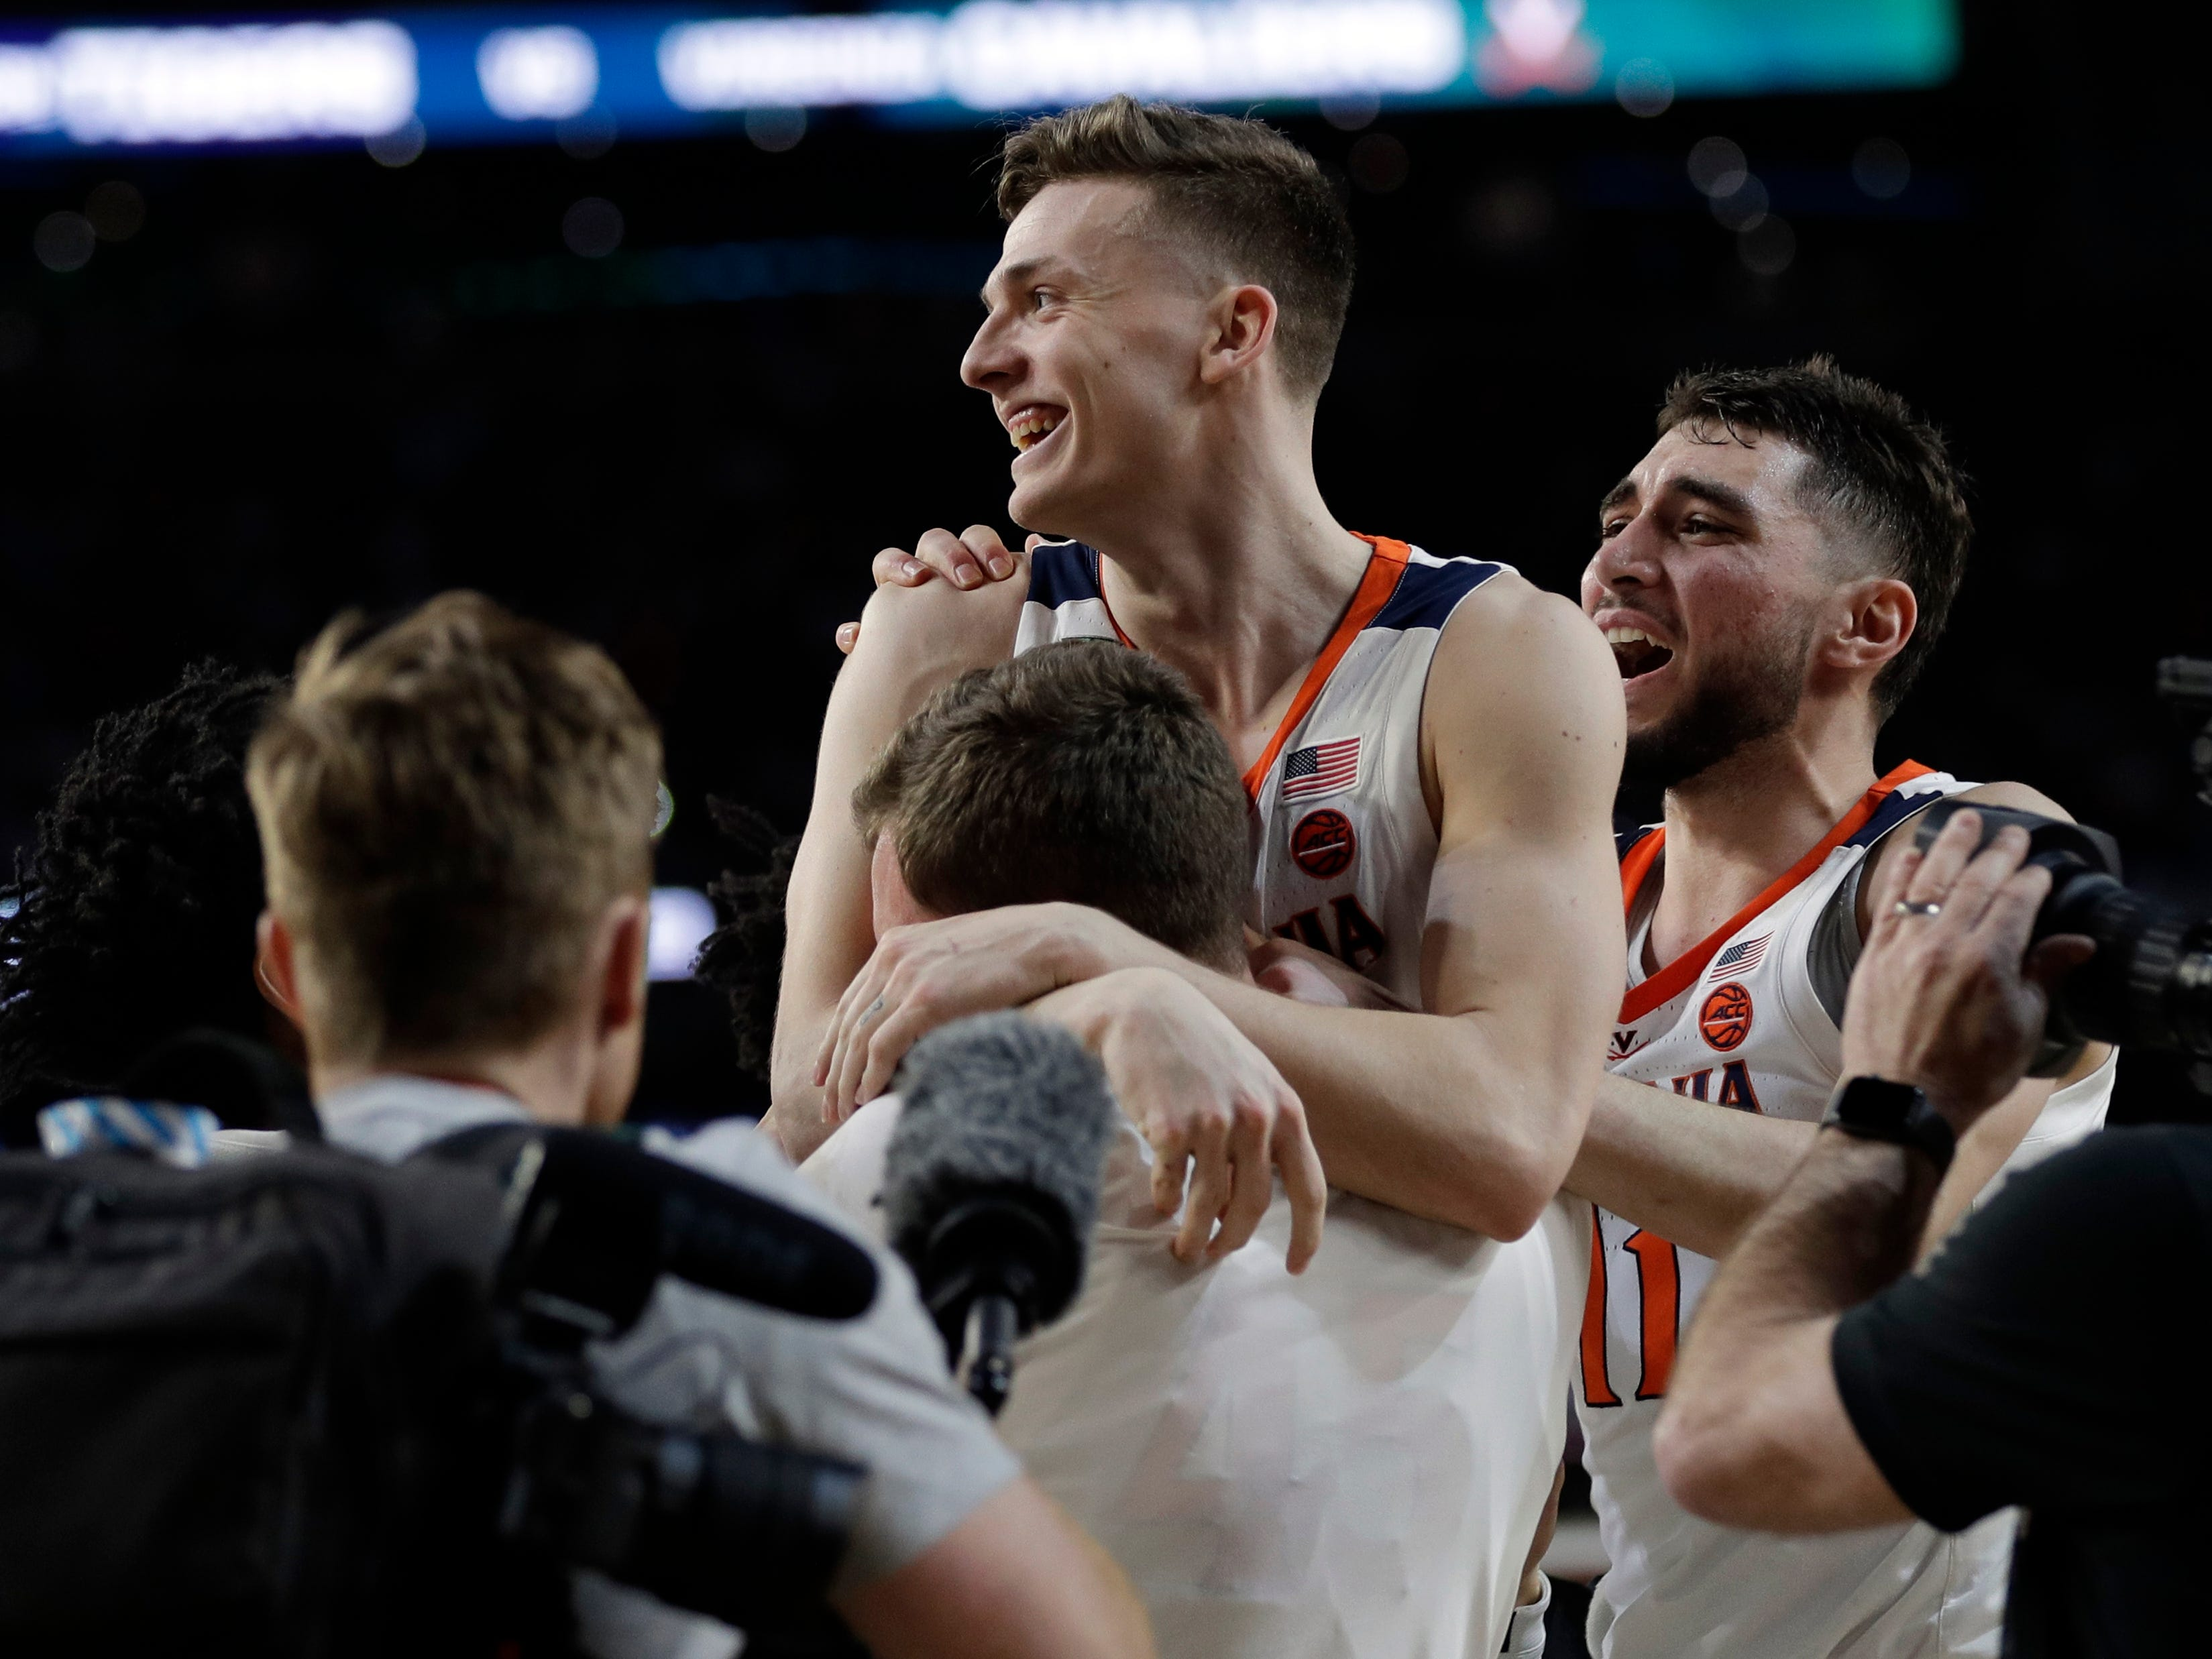 Virginia's Kyle Guy celebrates after defeating Auburn 63-62 in the semifinals of the Final Four NCAA college basketball tournament, Saturday, April 6, 2019, in Minneapolis.